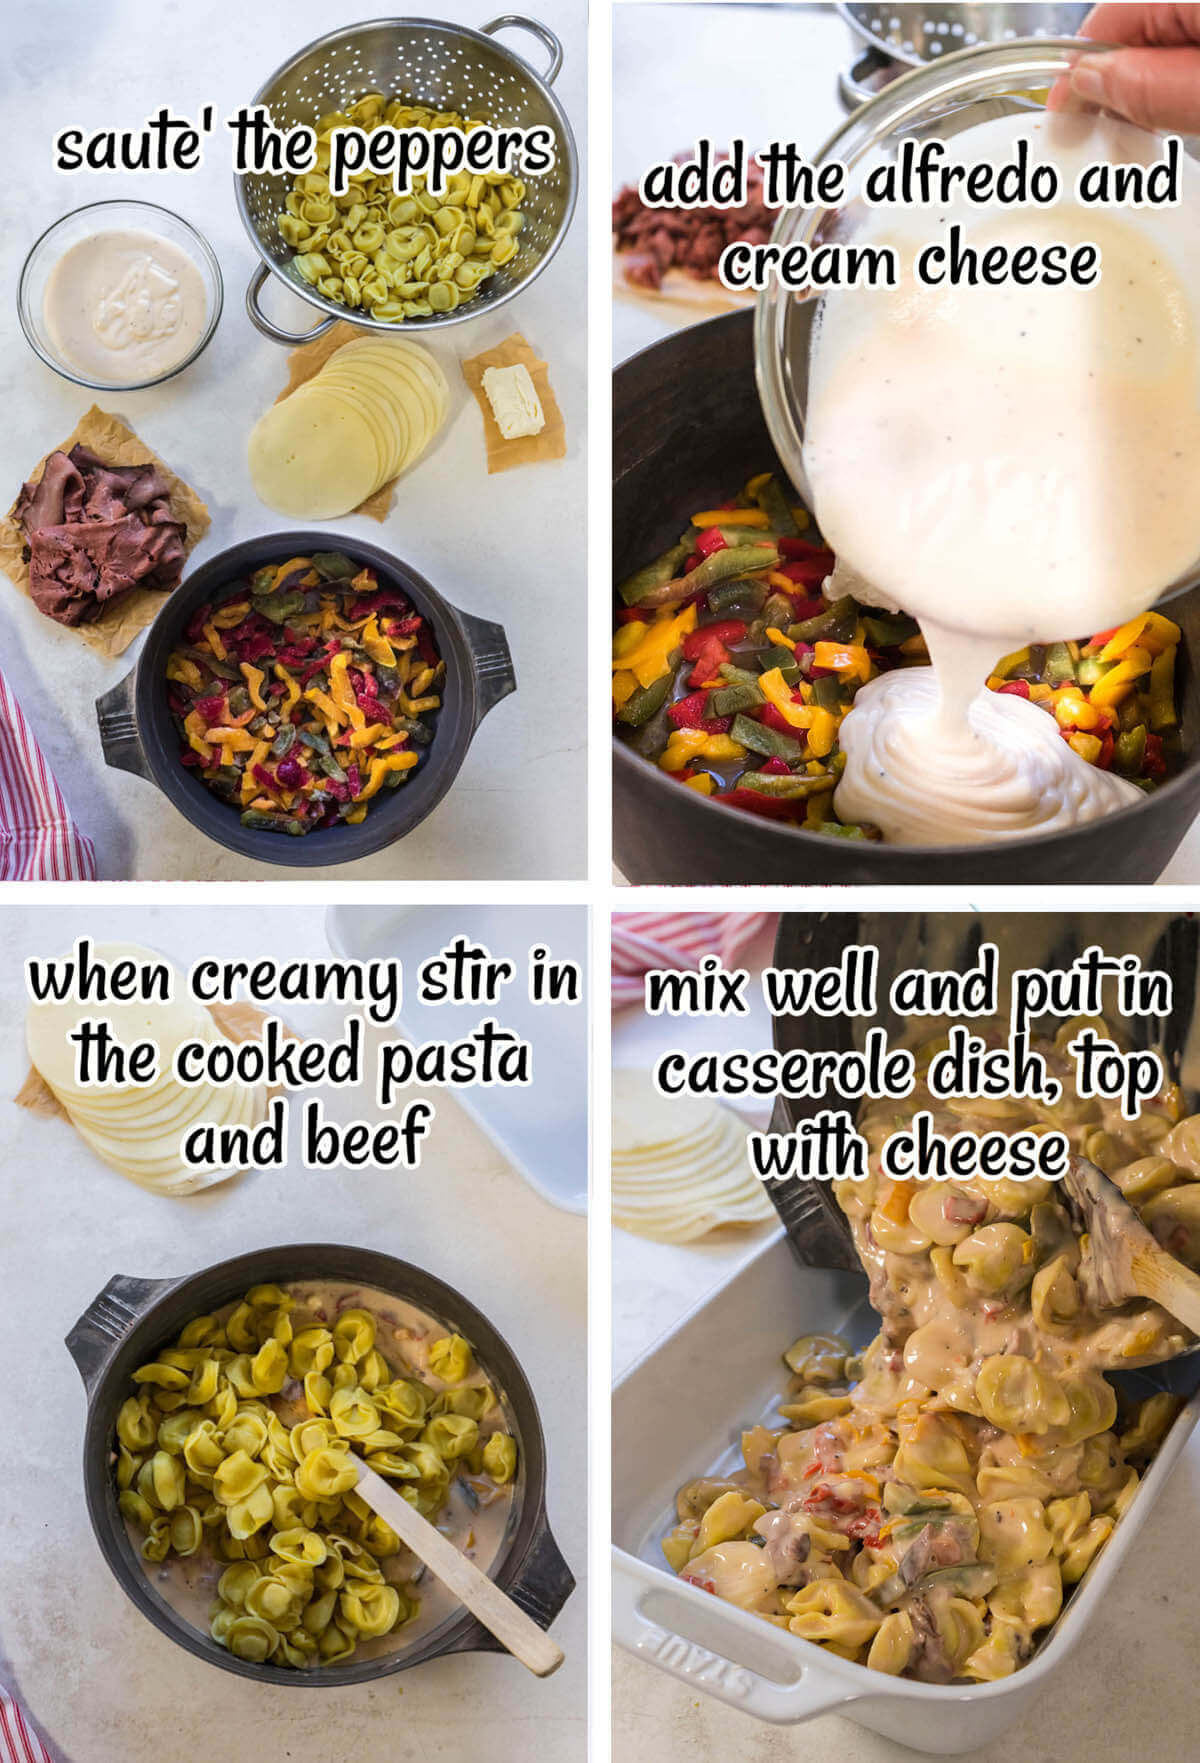 Step by step instructions to make the pasta casserole.